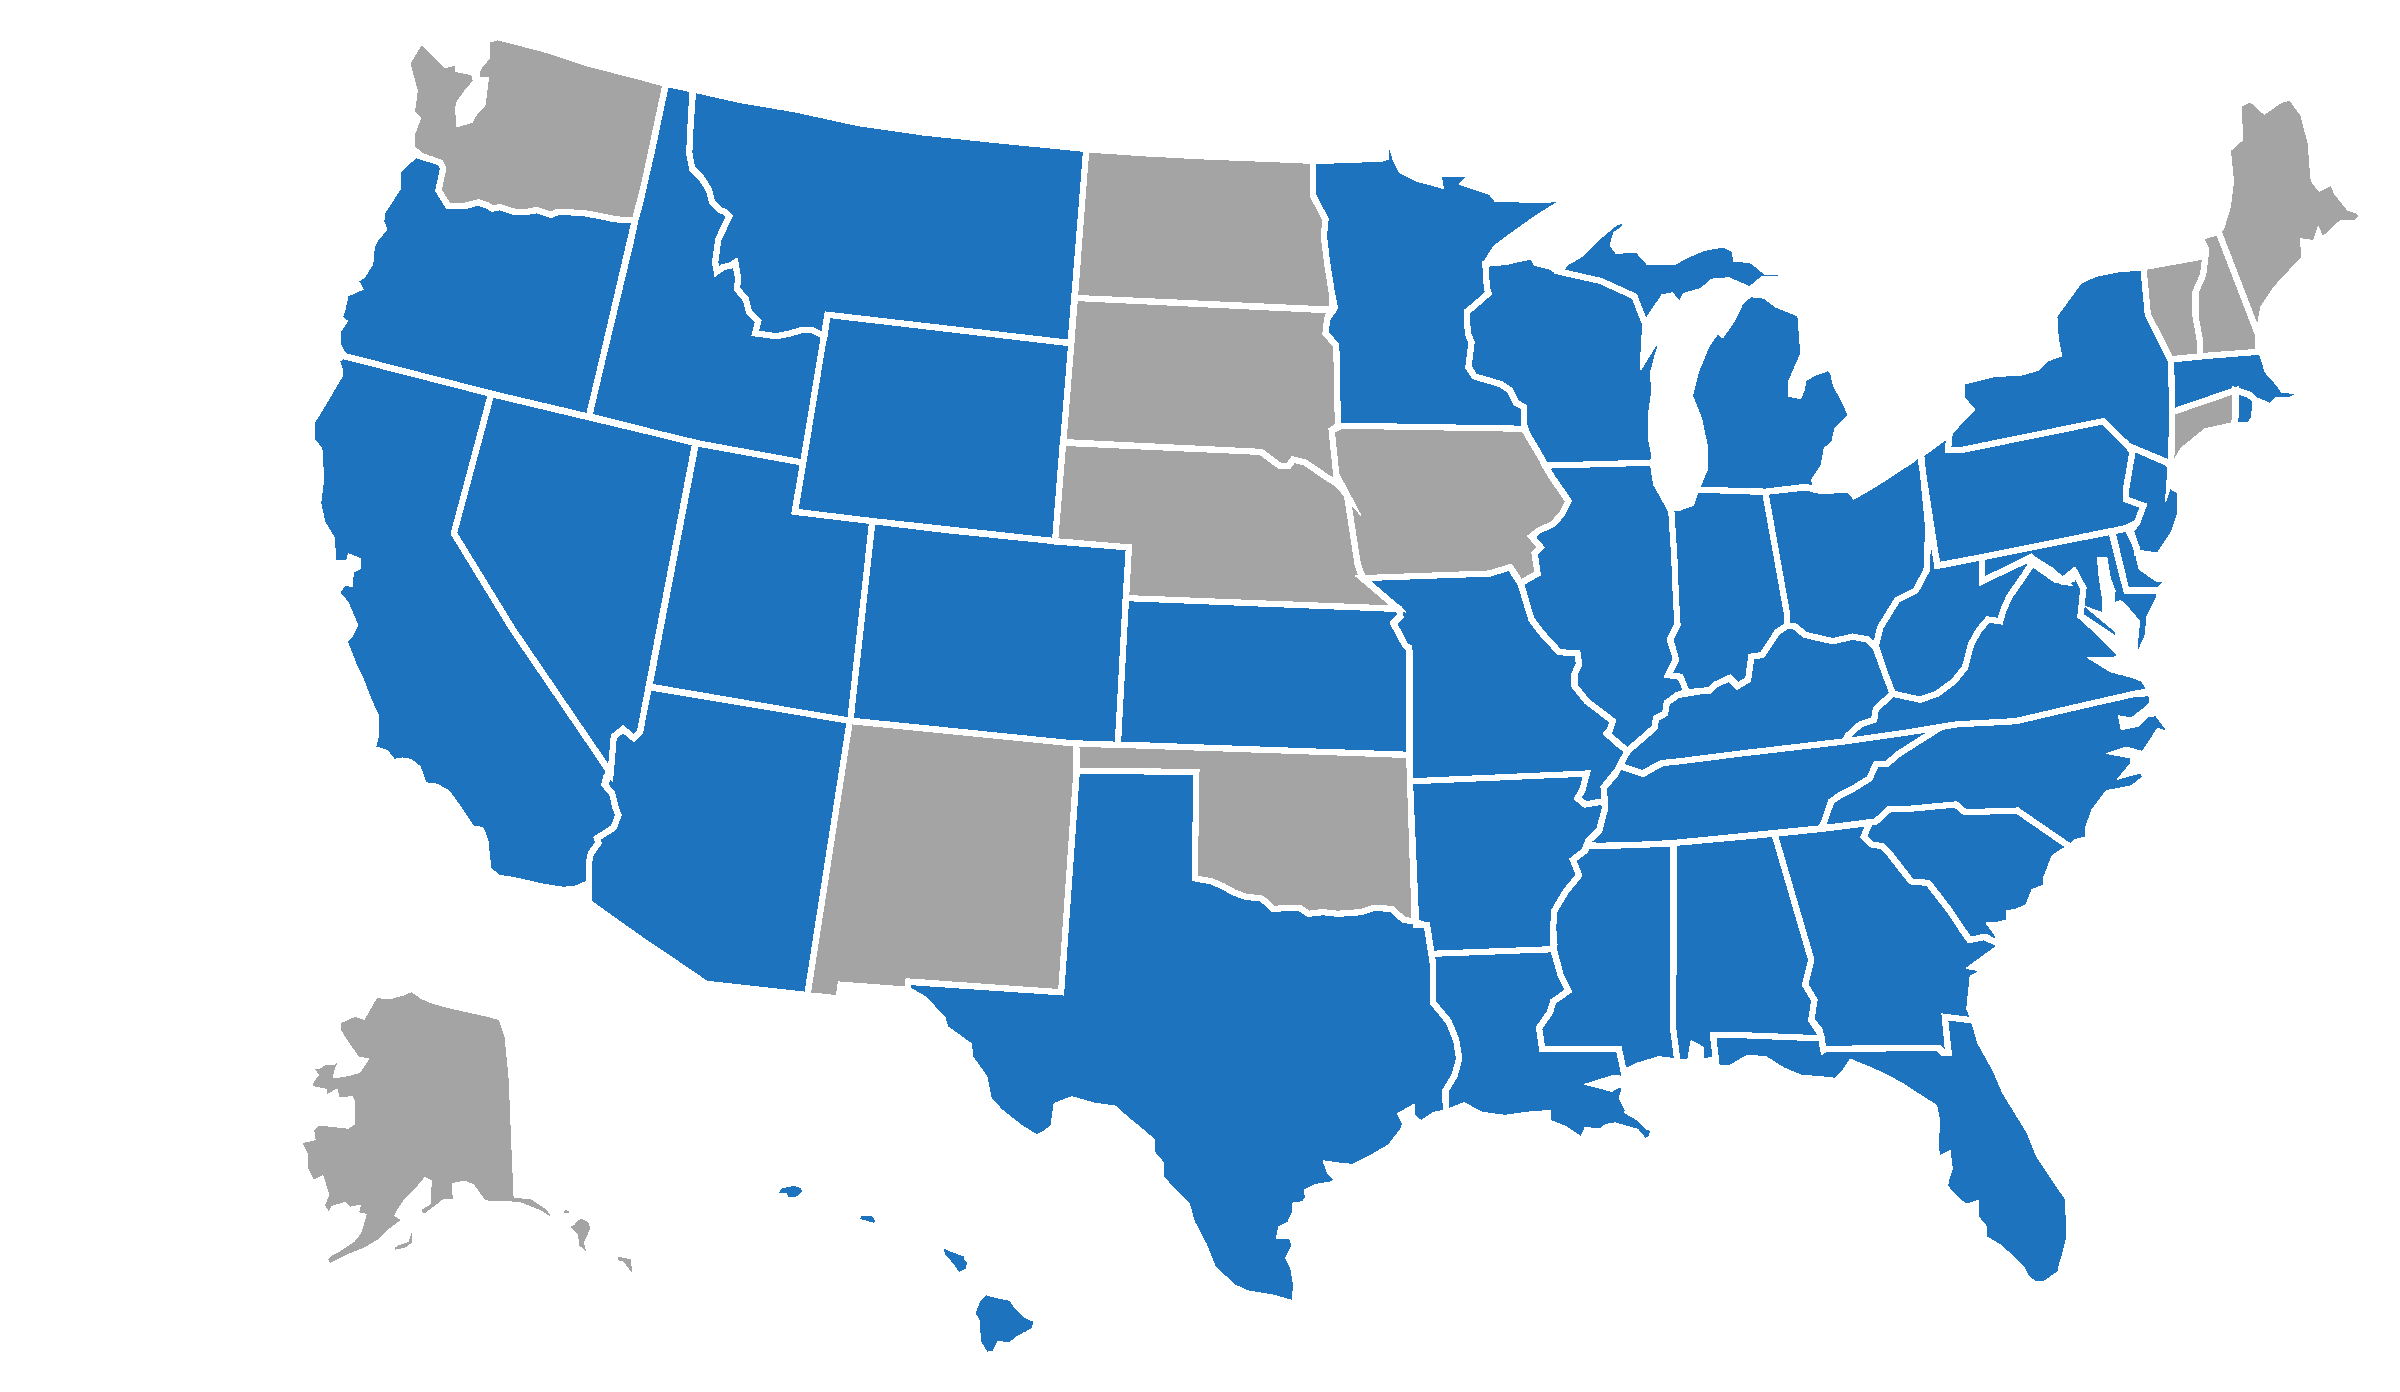 US States I've Visited